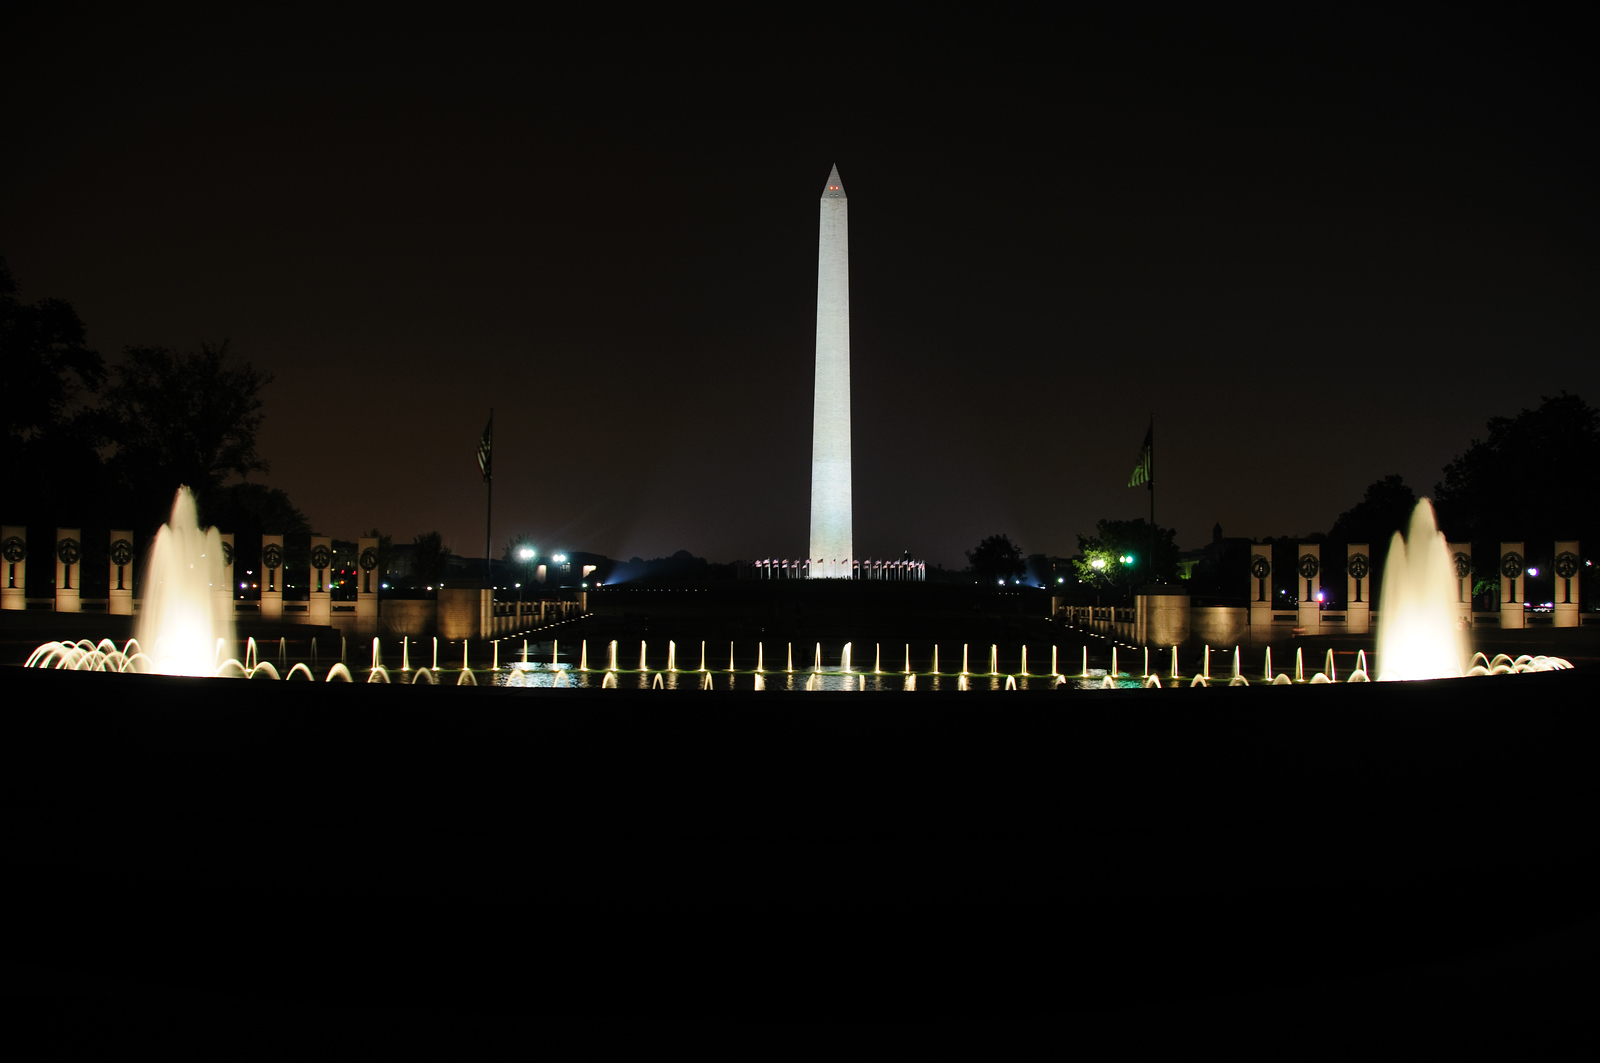 World War II Memorial & Washington Monument